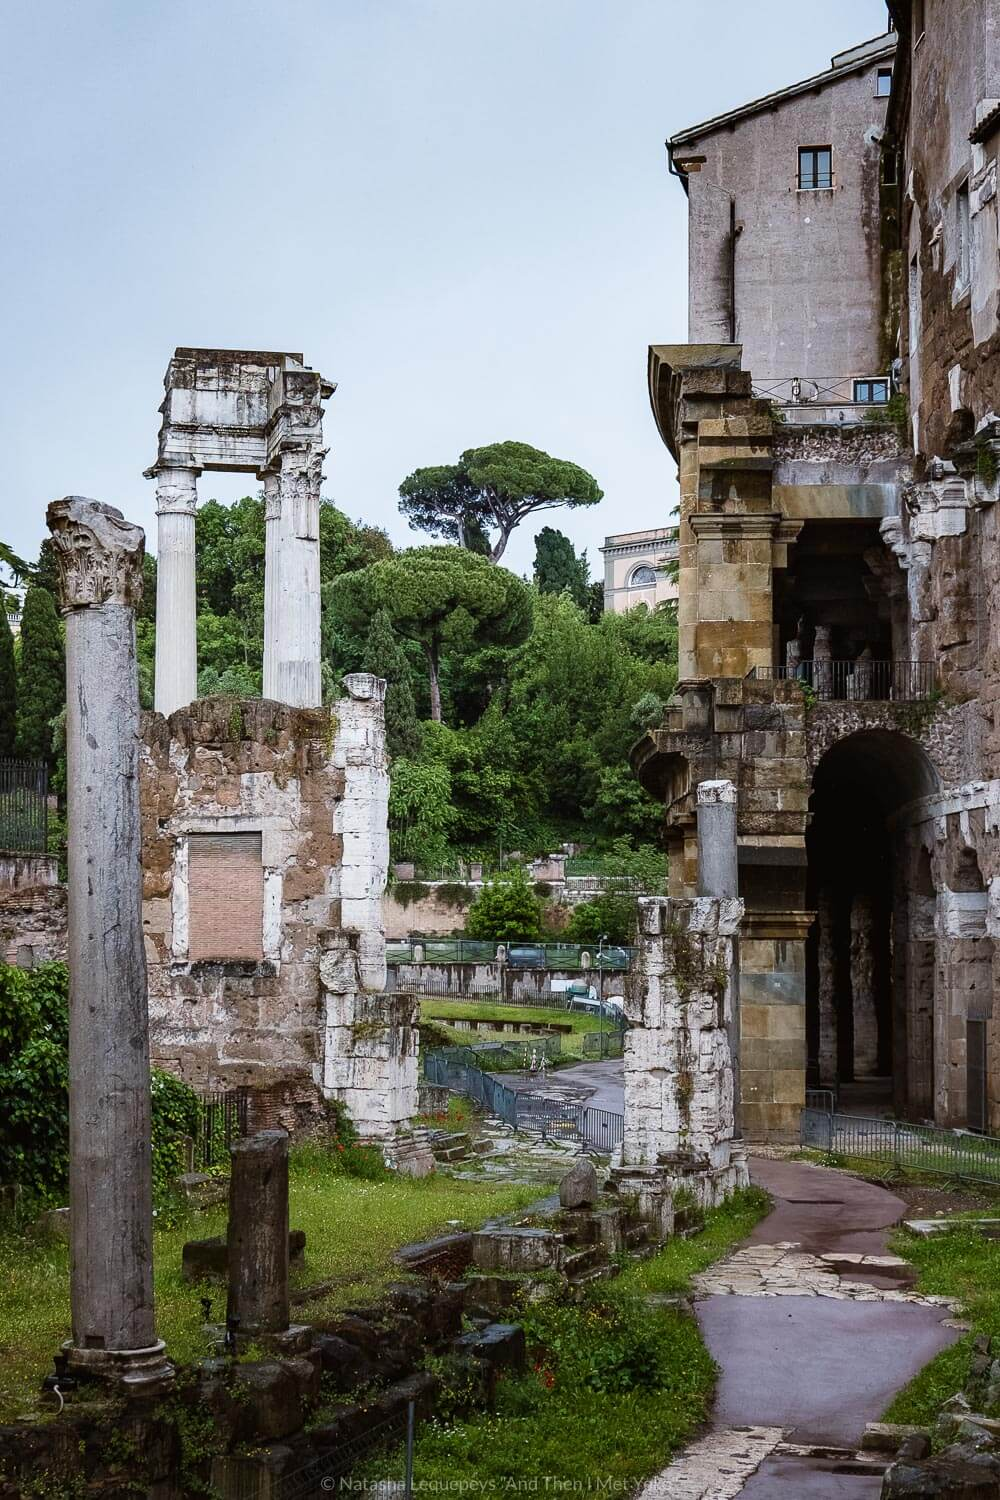 """Ruins of the ancient Roman walkway, Rome. Travel photography and guide by © Natasha Lequepeys for """"And Then I Met Yoko"""". #rome #jewishghettorome #italy #fujifilm #travelphotography"""